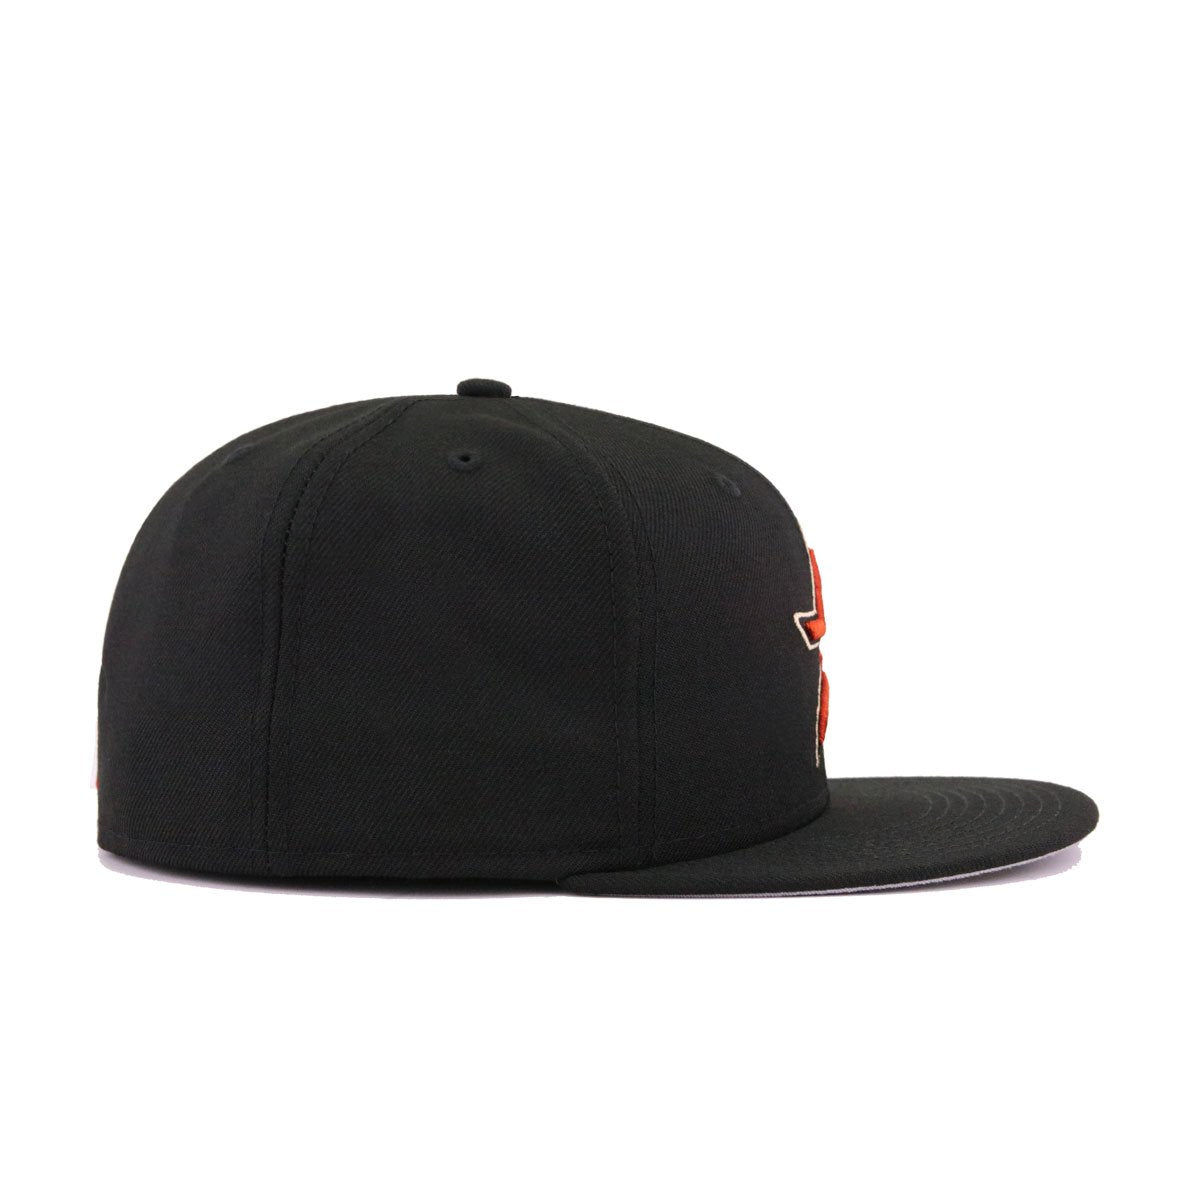 Houston Astros Black Cooperstown New Era 59Fifty Fitted